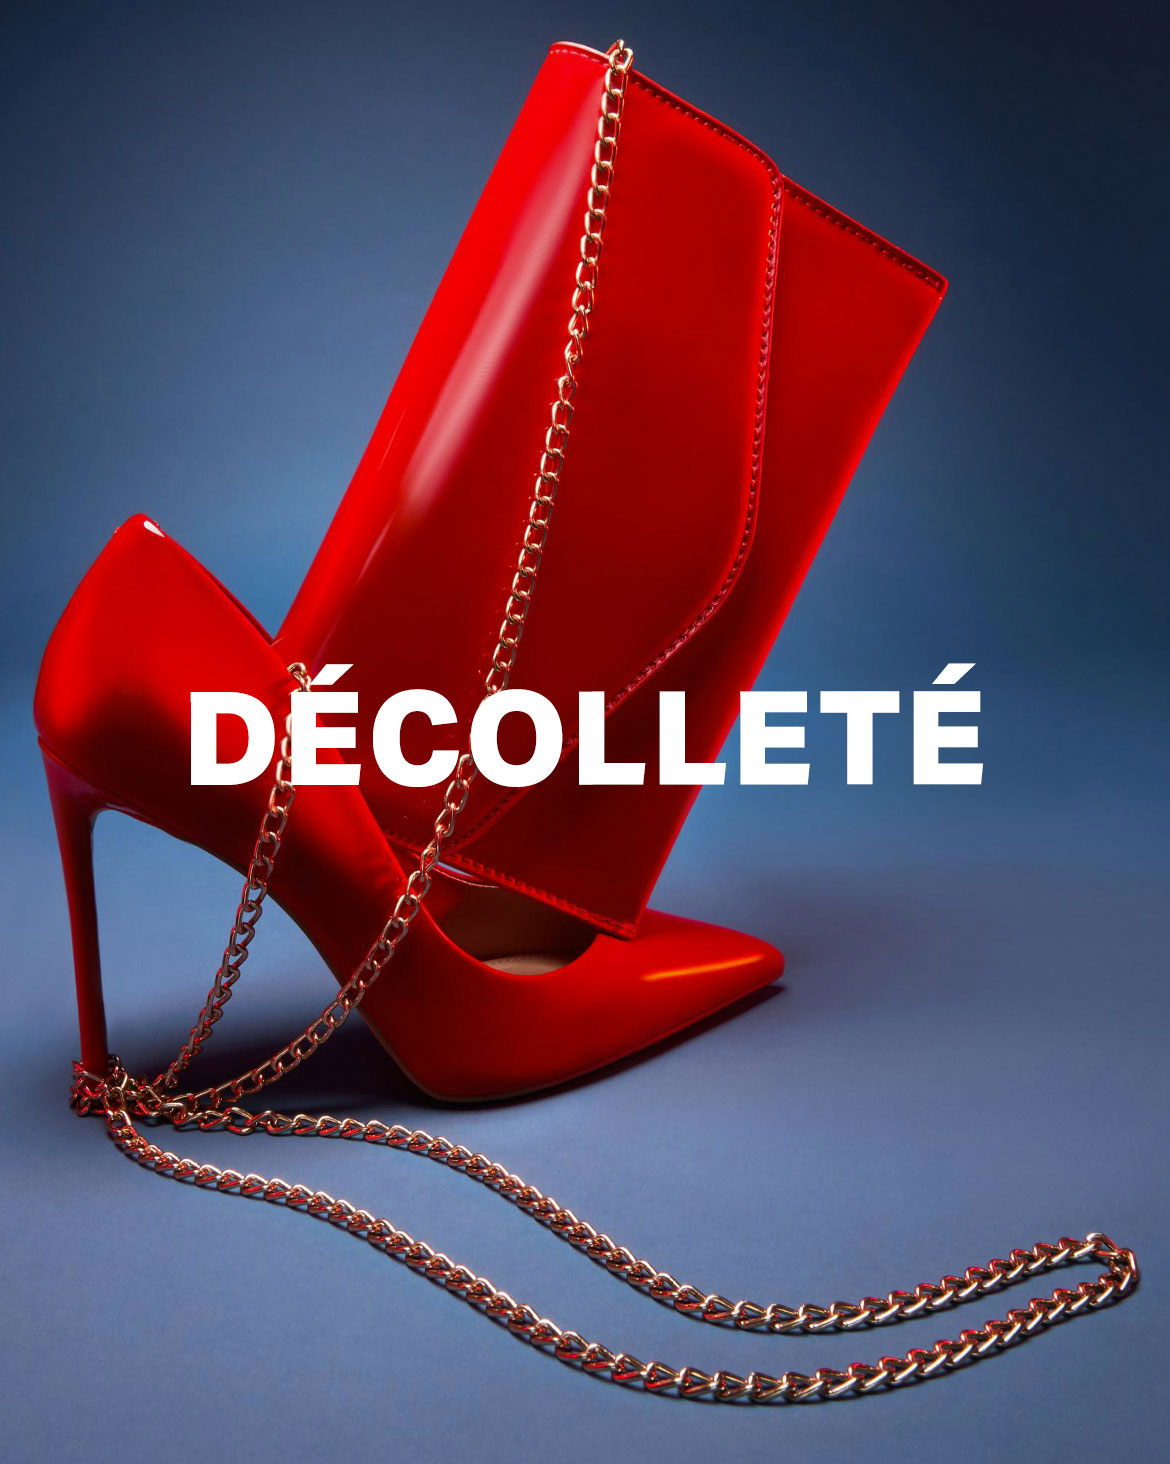 Decollete Gift Guide Banner